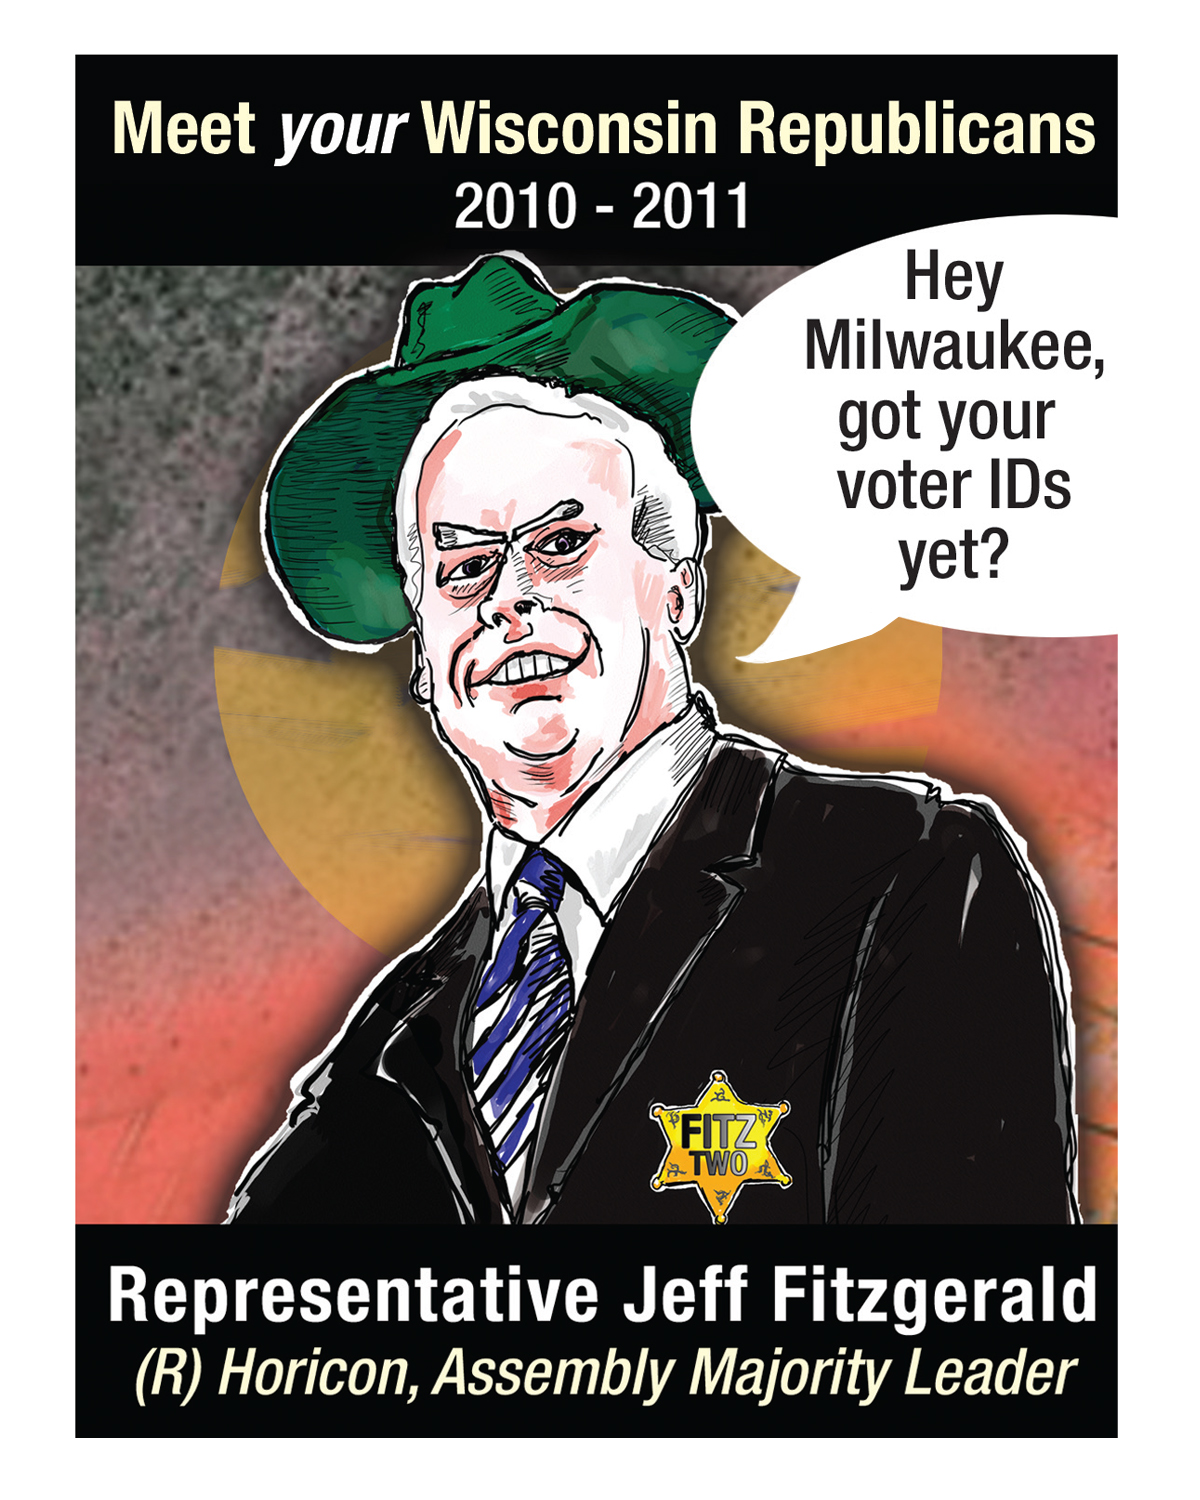 Wisconsin's 2010 Republican leaders willing to sell our state to the Koch brothers included Assembly Majority Leader Jeff Fitzgerald. Cartoon by Geez! I'm Angry